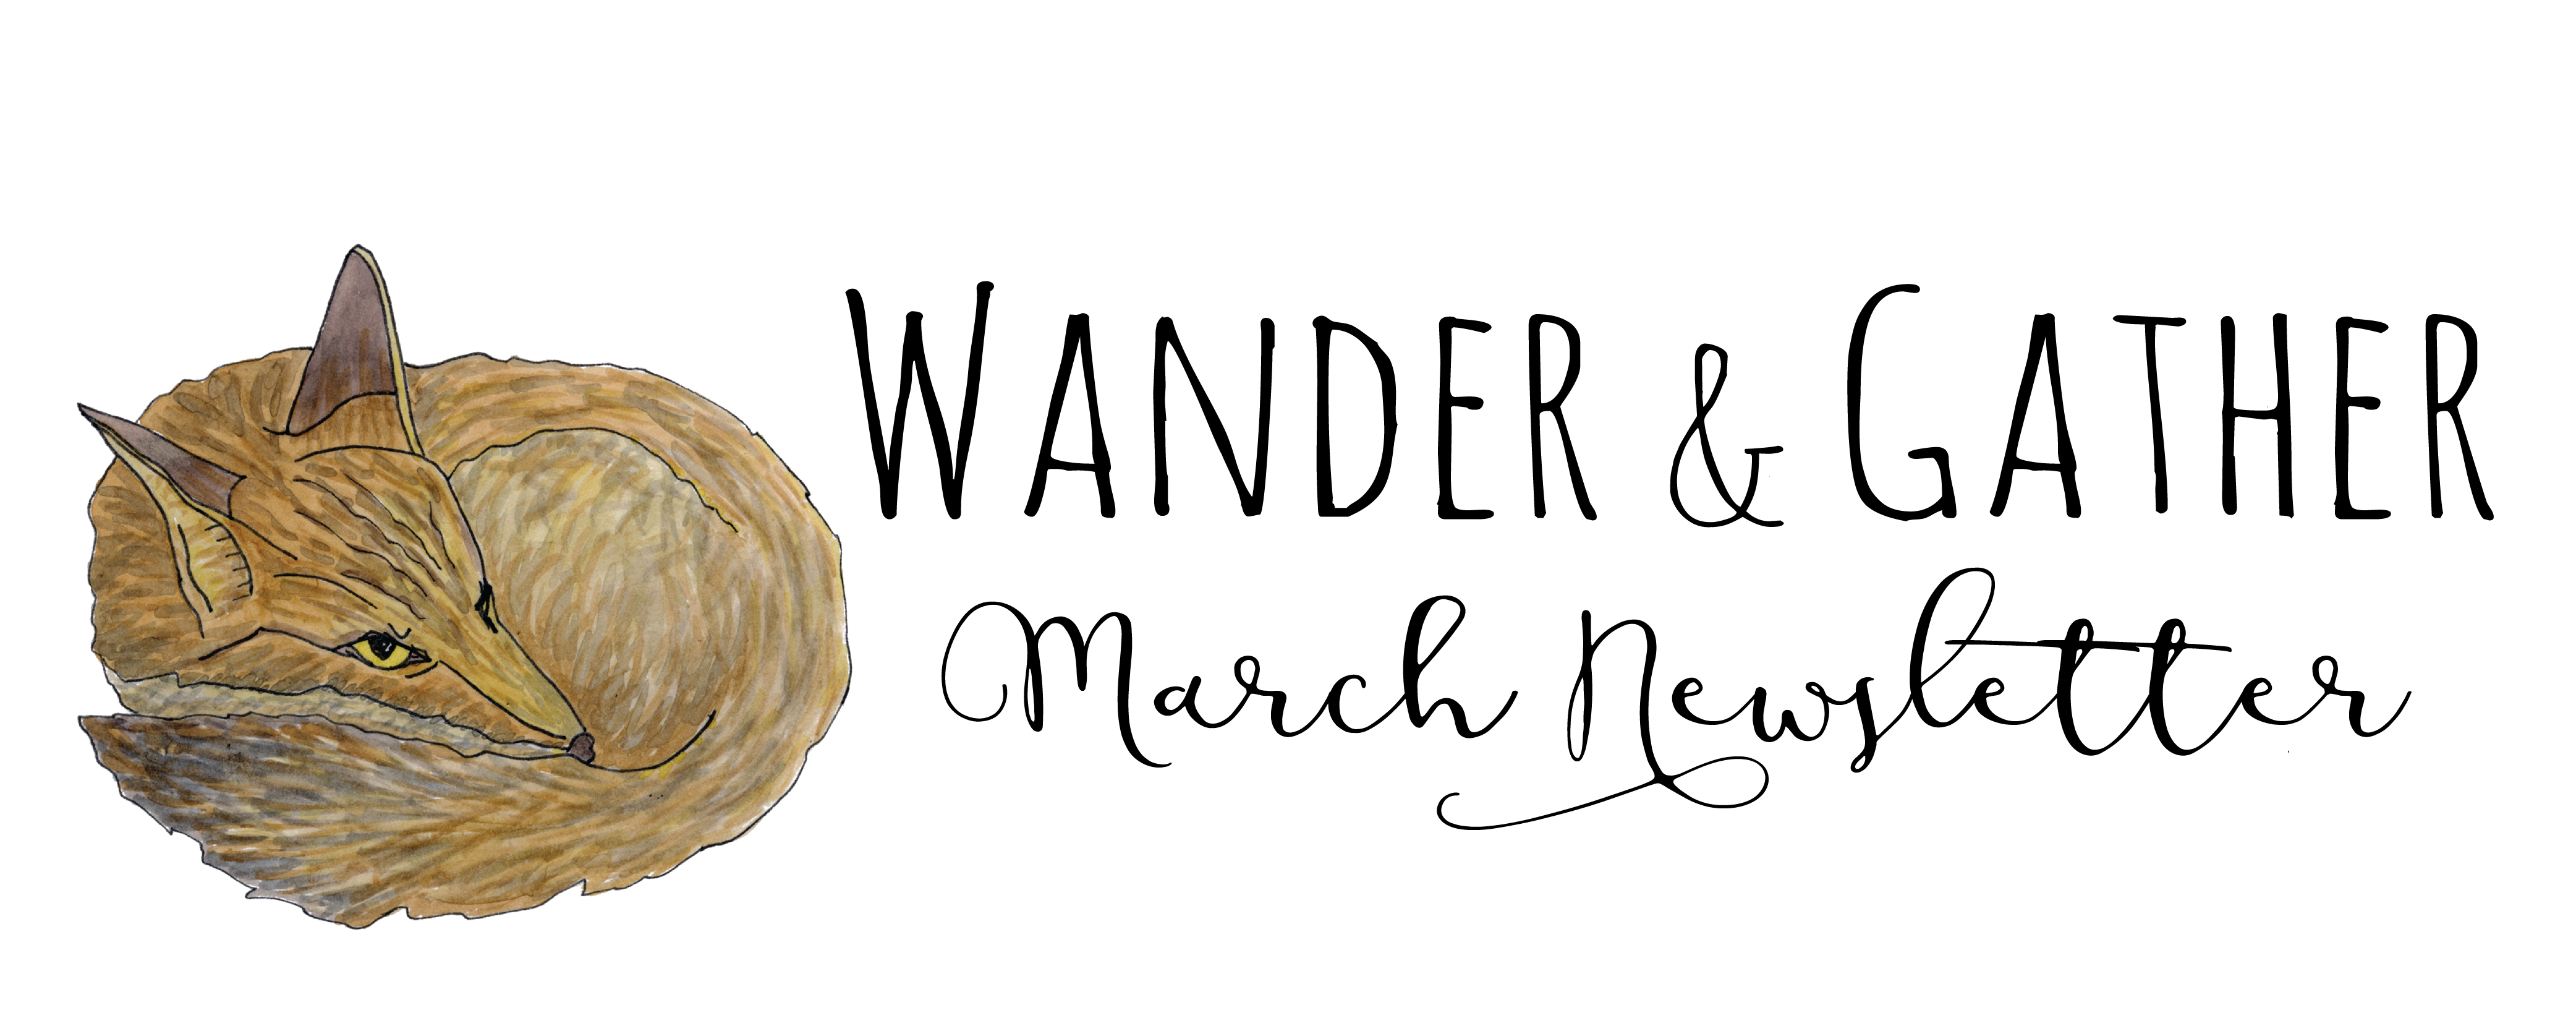 March newsletter header-01